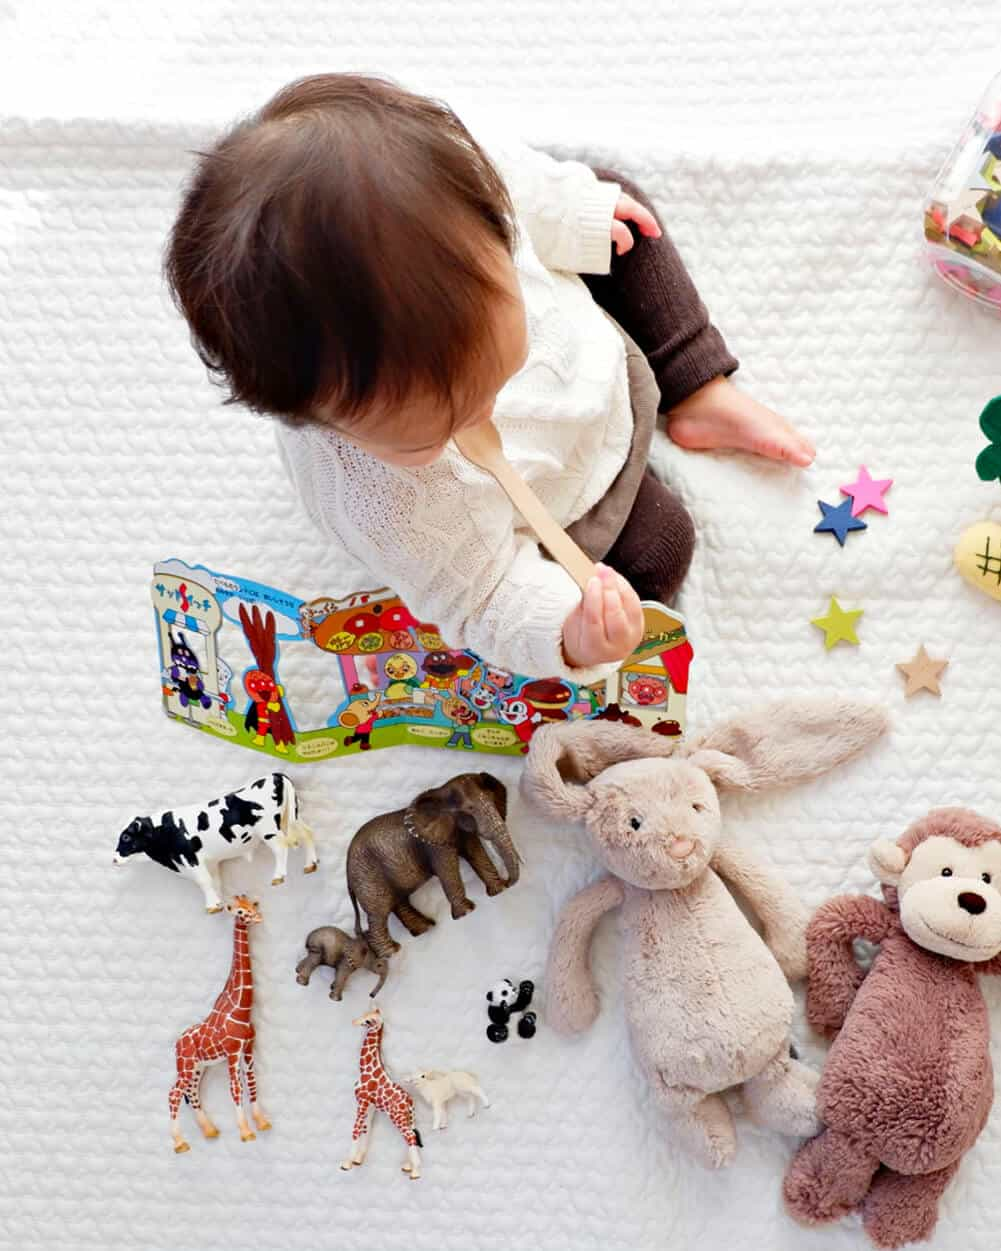 Infant sitting on a blanked playing with toys